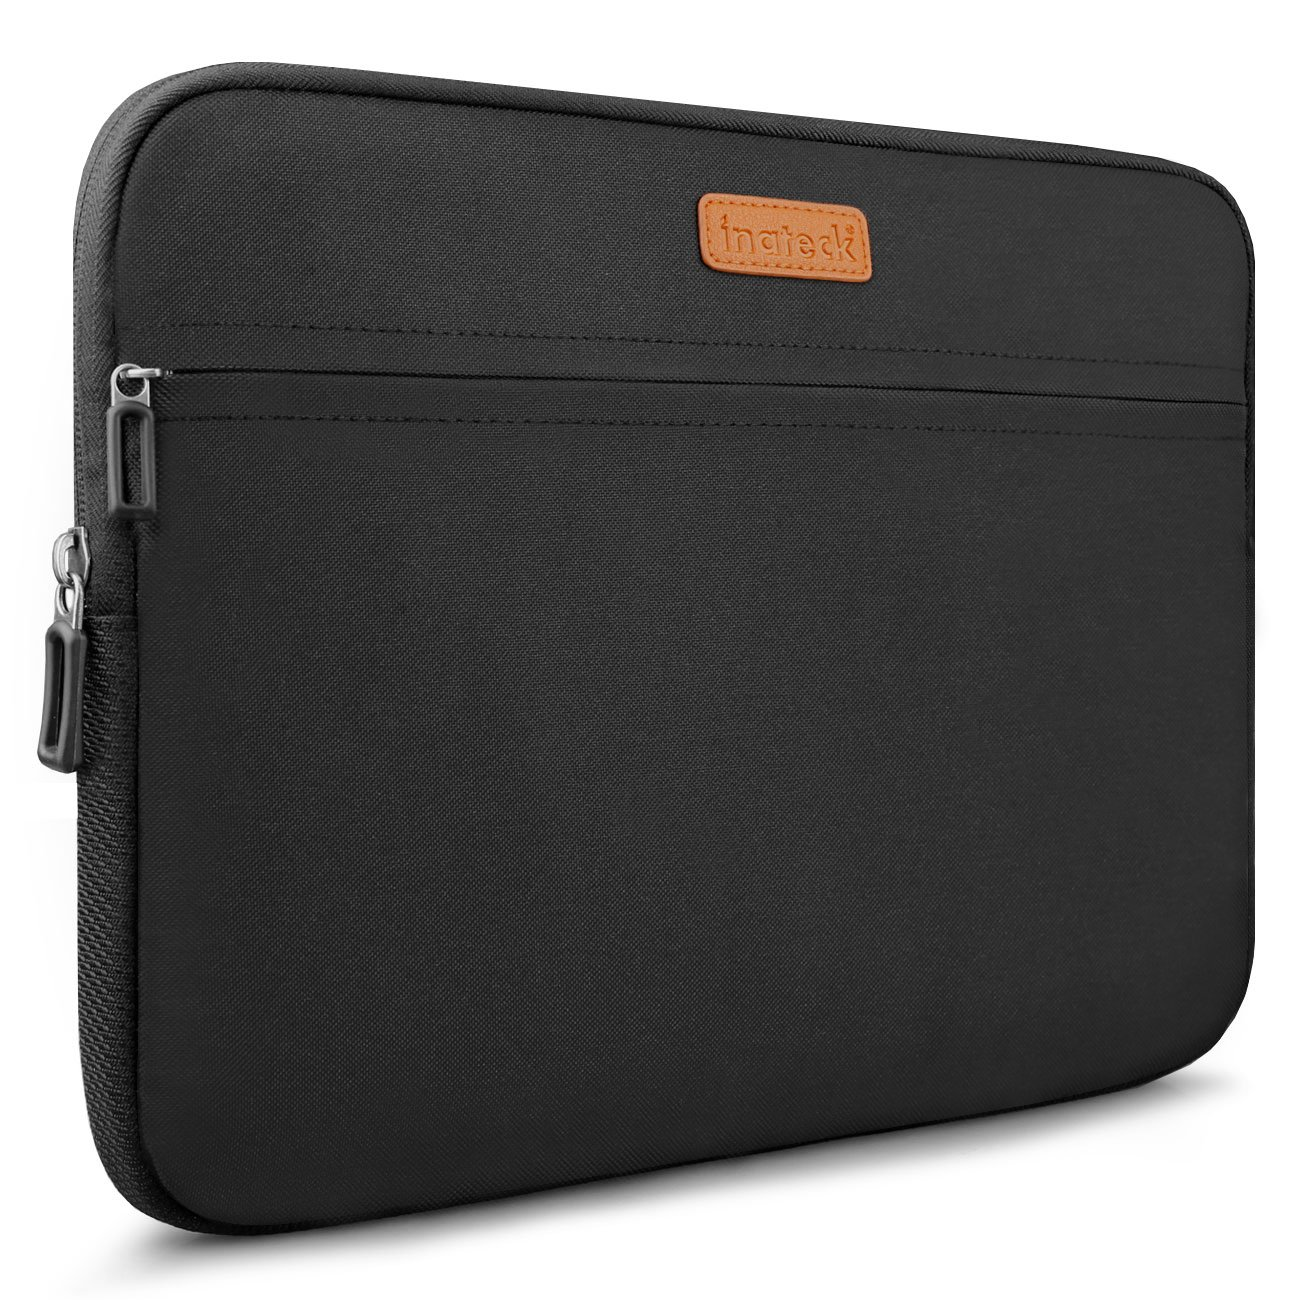 Inateck 13-13.3'' MacBook Air/Pro Retina Sleeve Carrying Case Cover Protective Bag, Water Repellent - Black (LC1300B) by Inateck